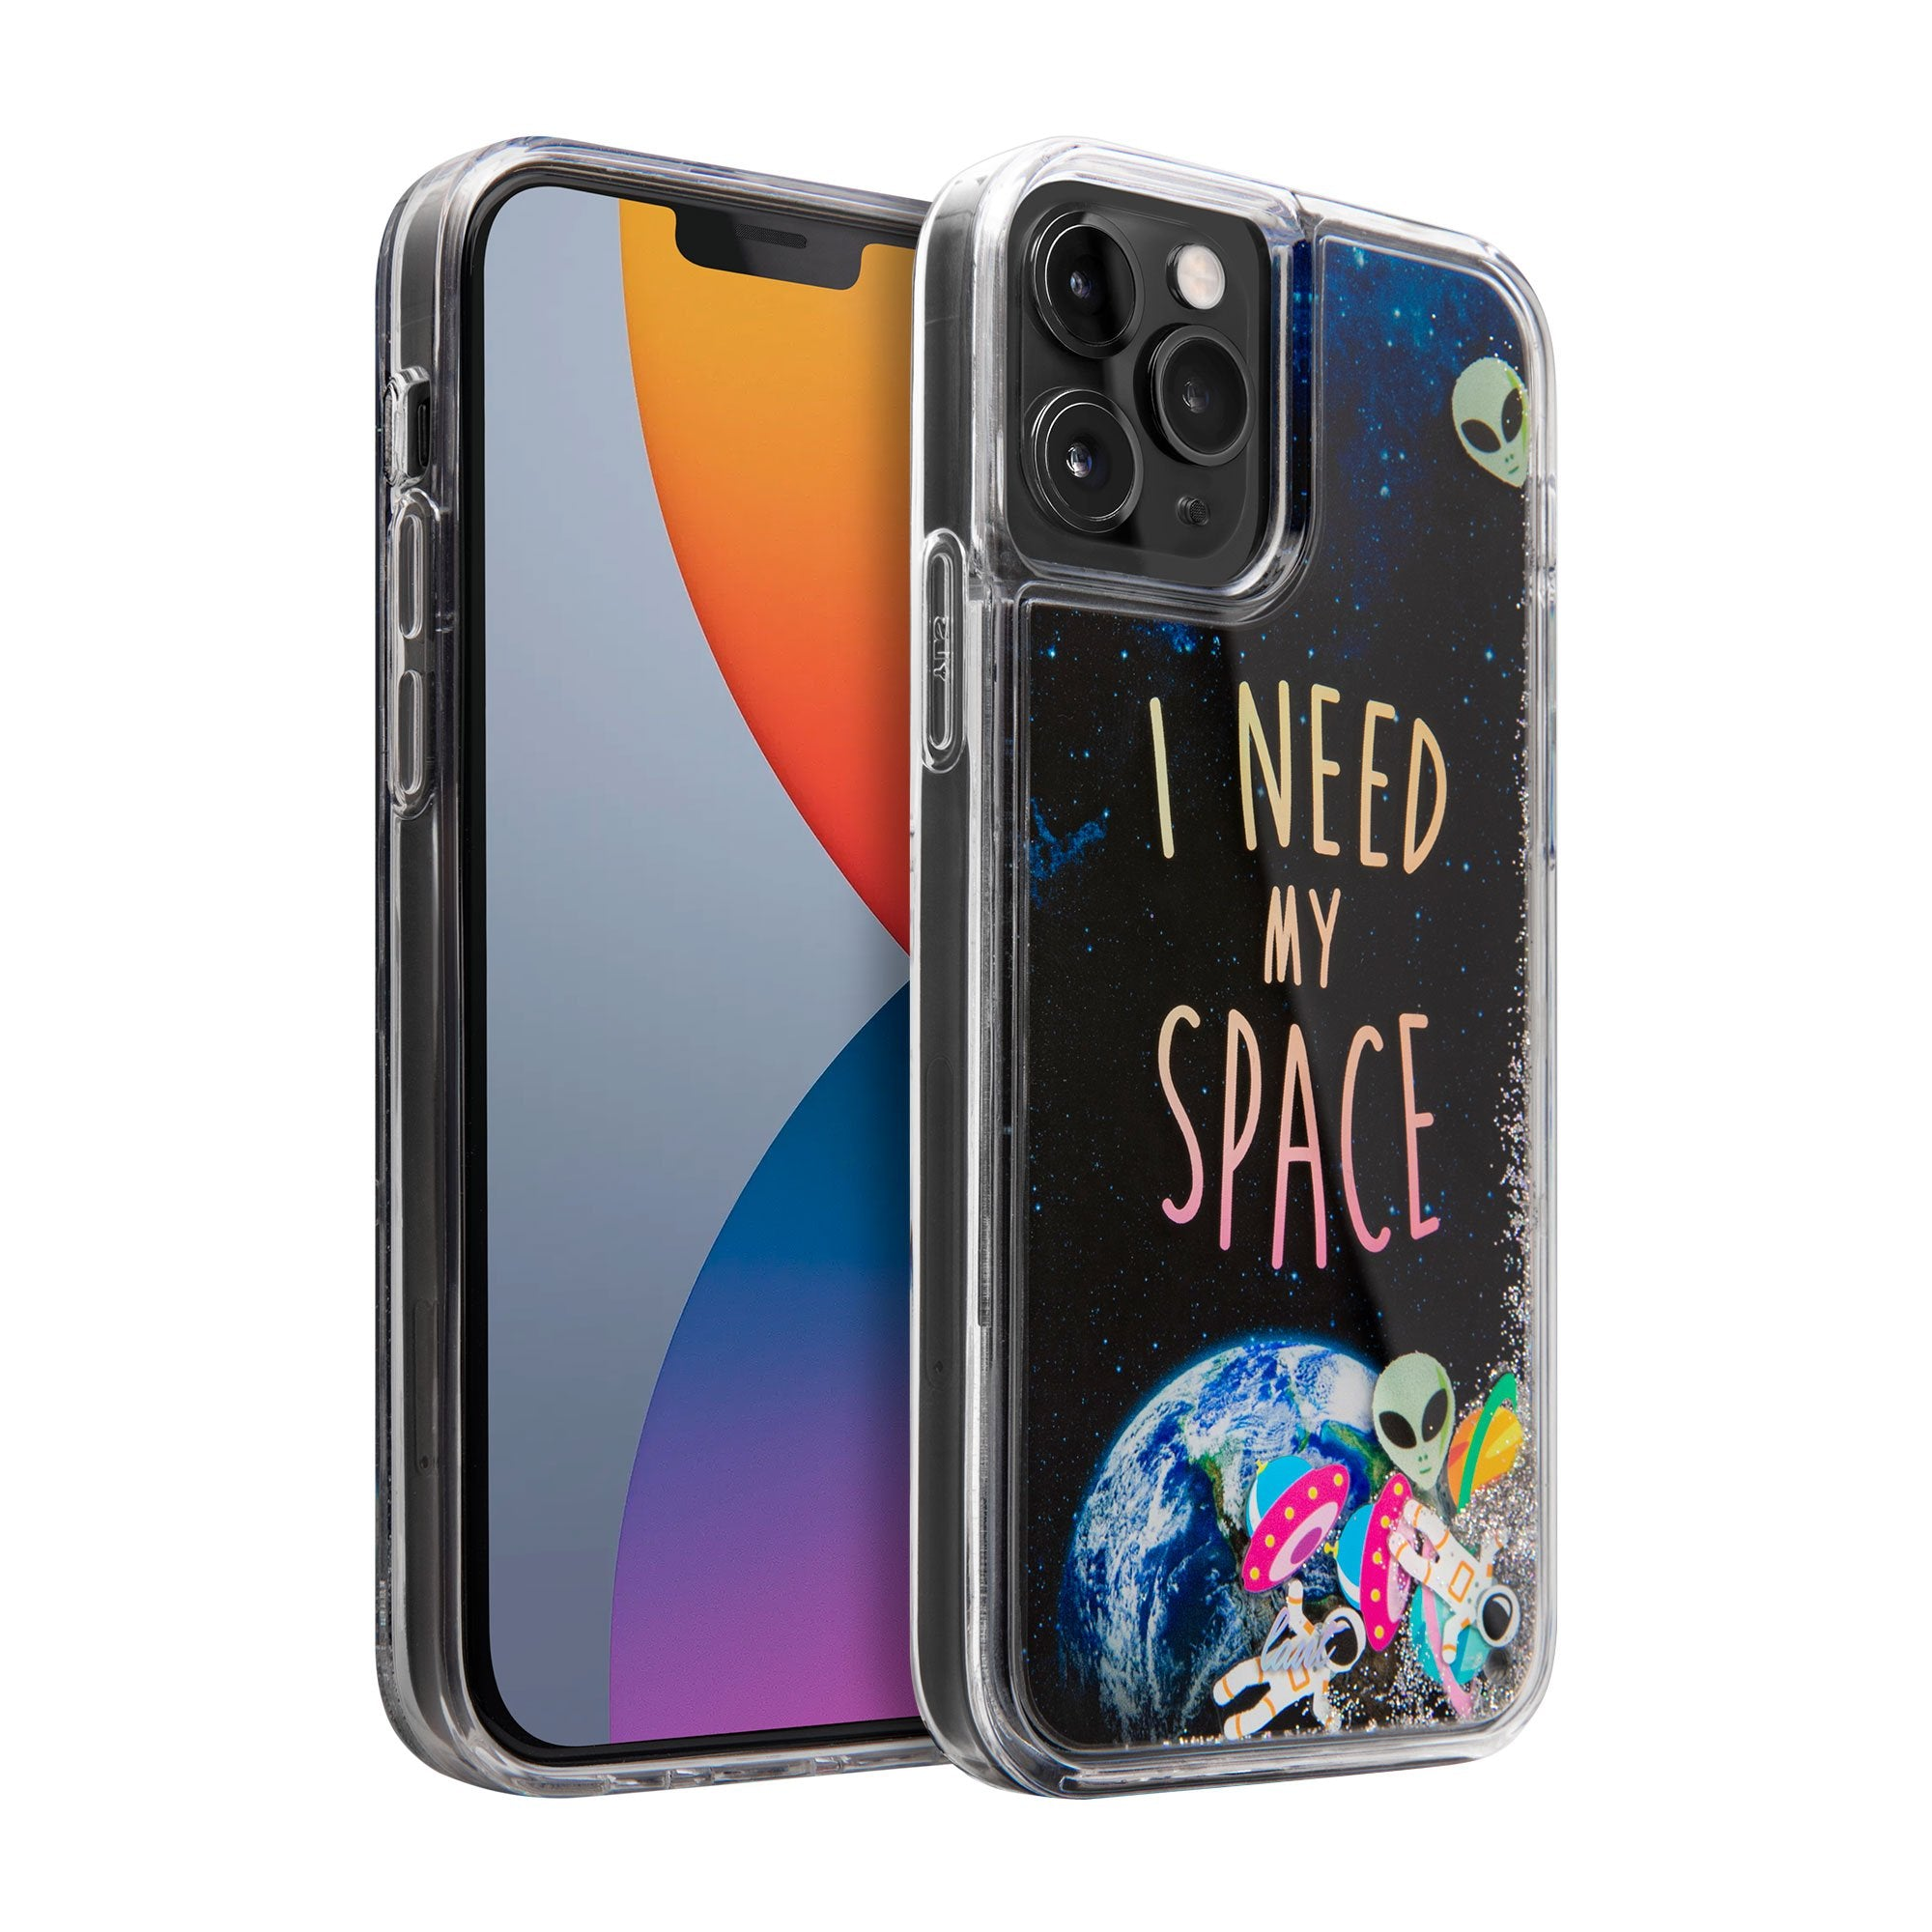 SPACE Liquid Glitter case for iPhone 12 series